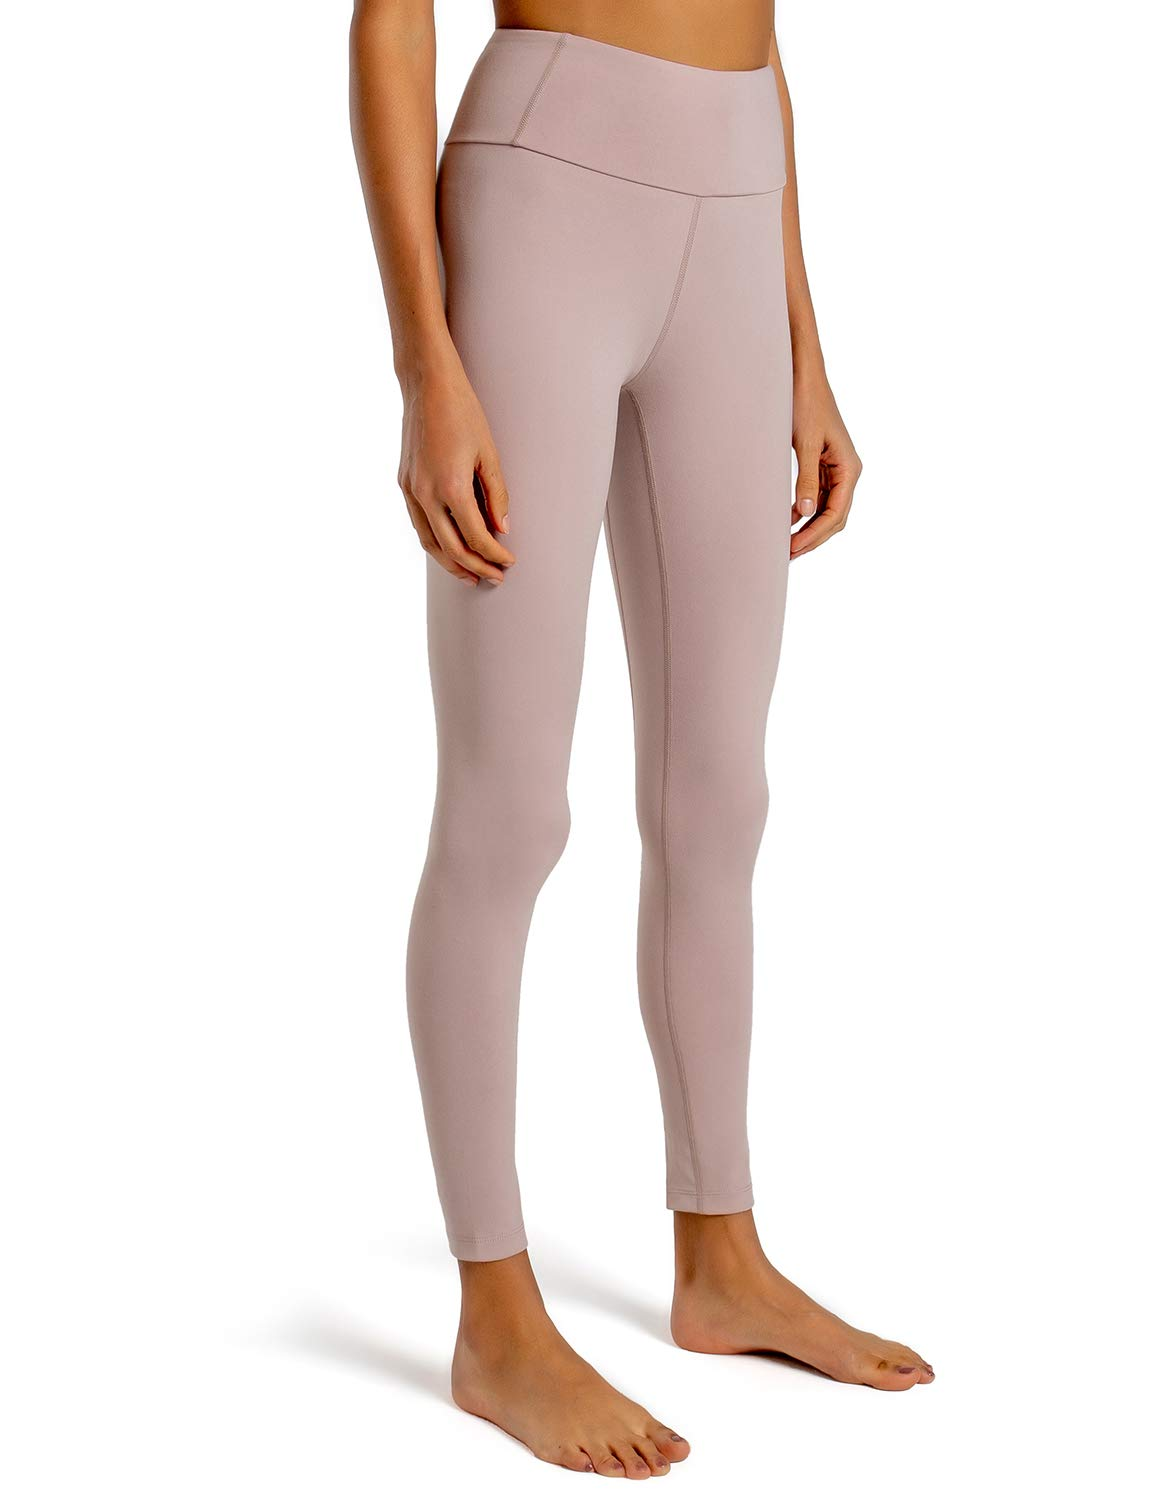 FIRST WAY Buttery Soft Women's Yoga Leggings Capris with Pockets, Peach Skin Finish 30% Spandex Workout Pants Gym Tights